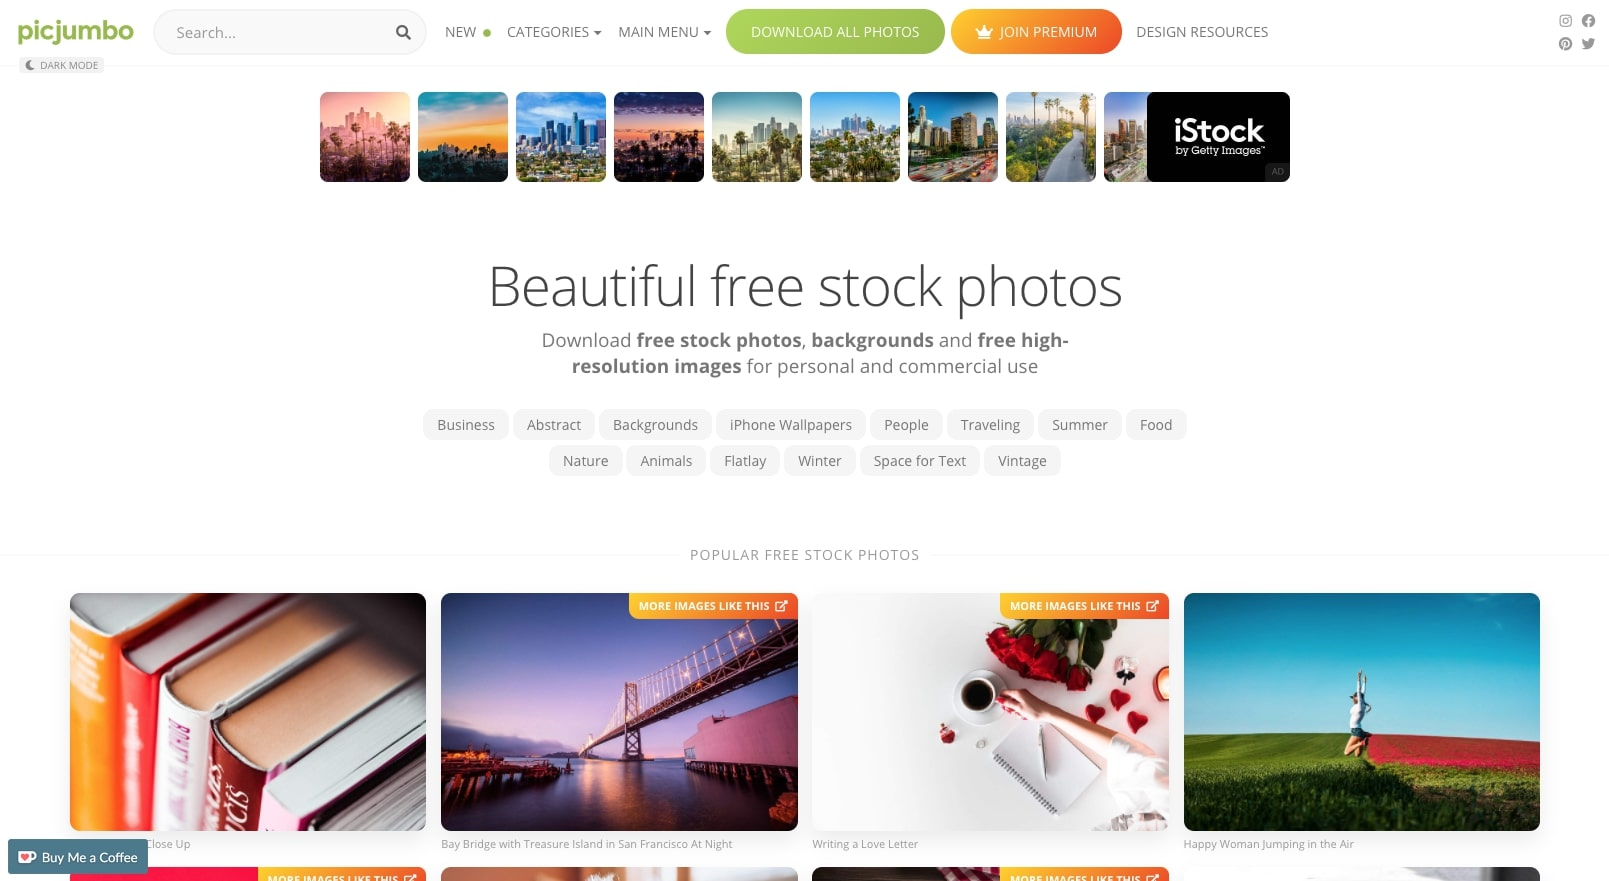 picjumbo free stock photos